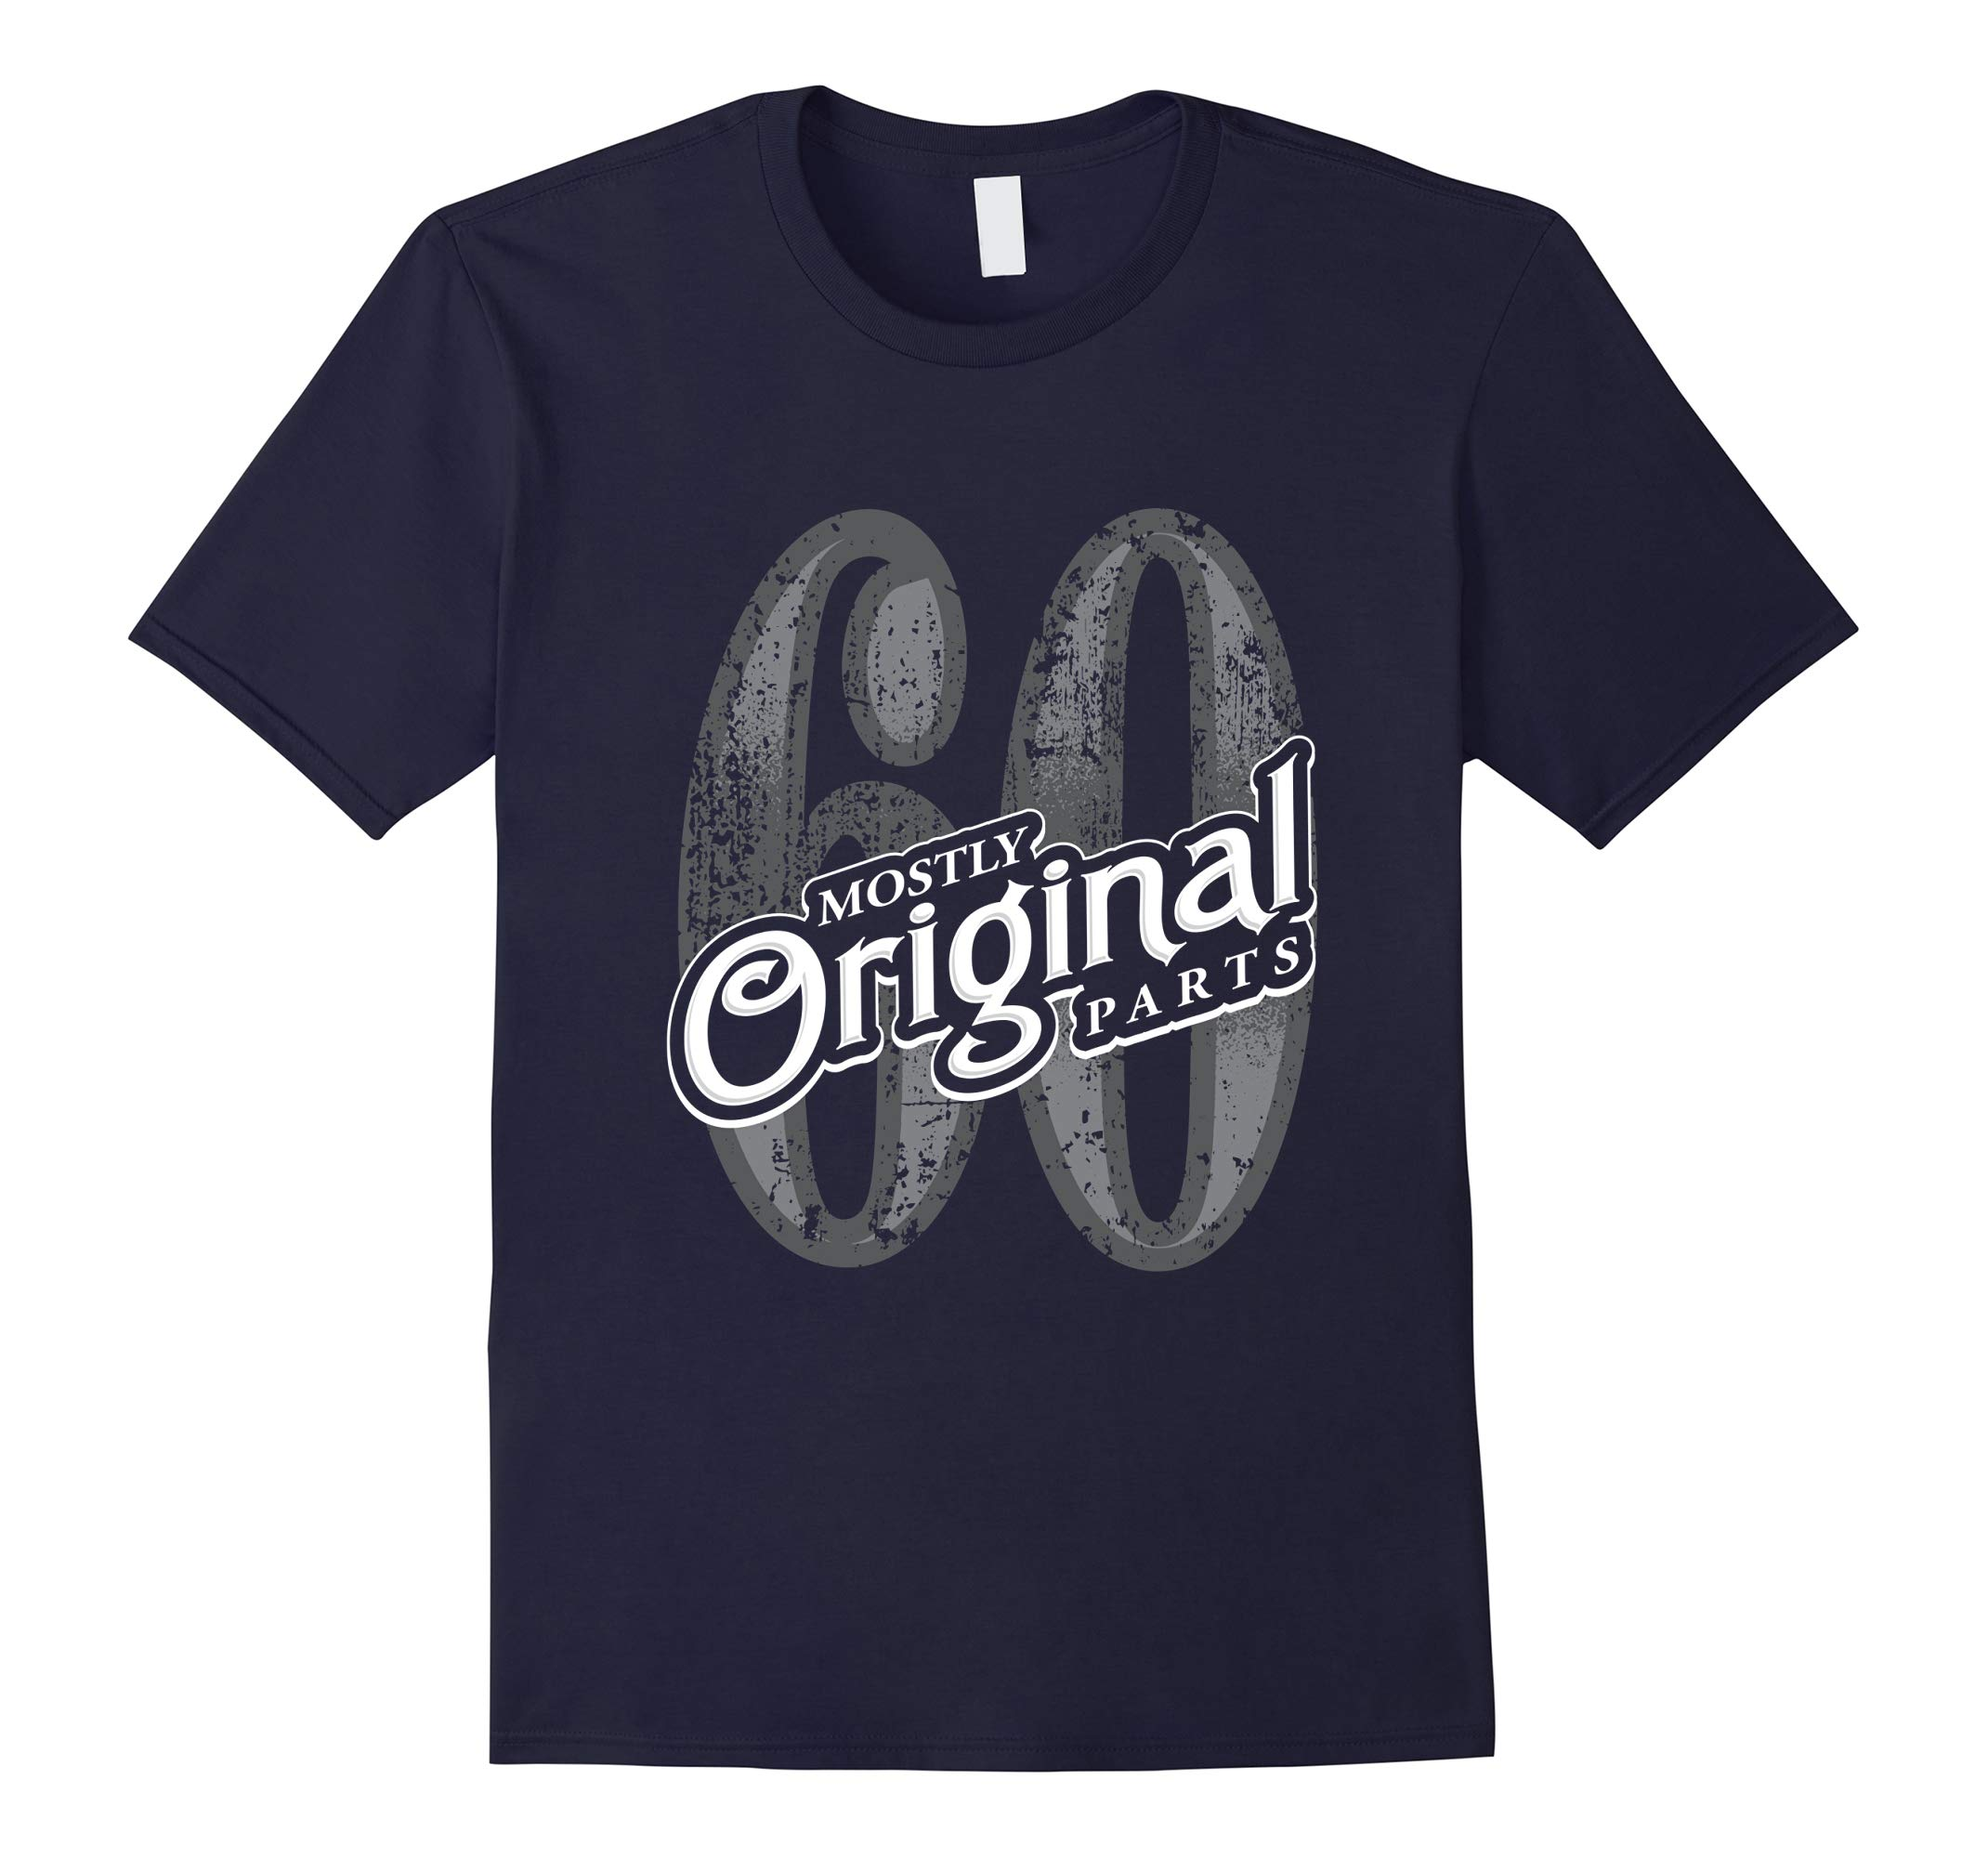 60, Mostly Original Parts - Mens 60th Birthday Tee-RT